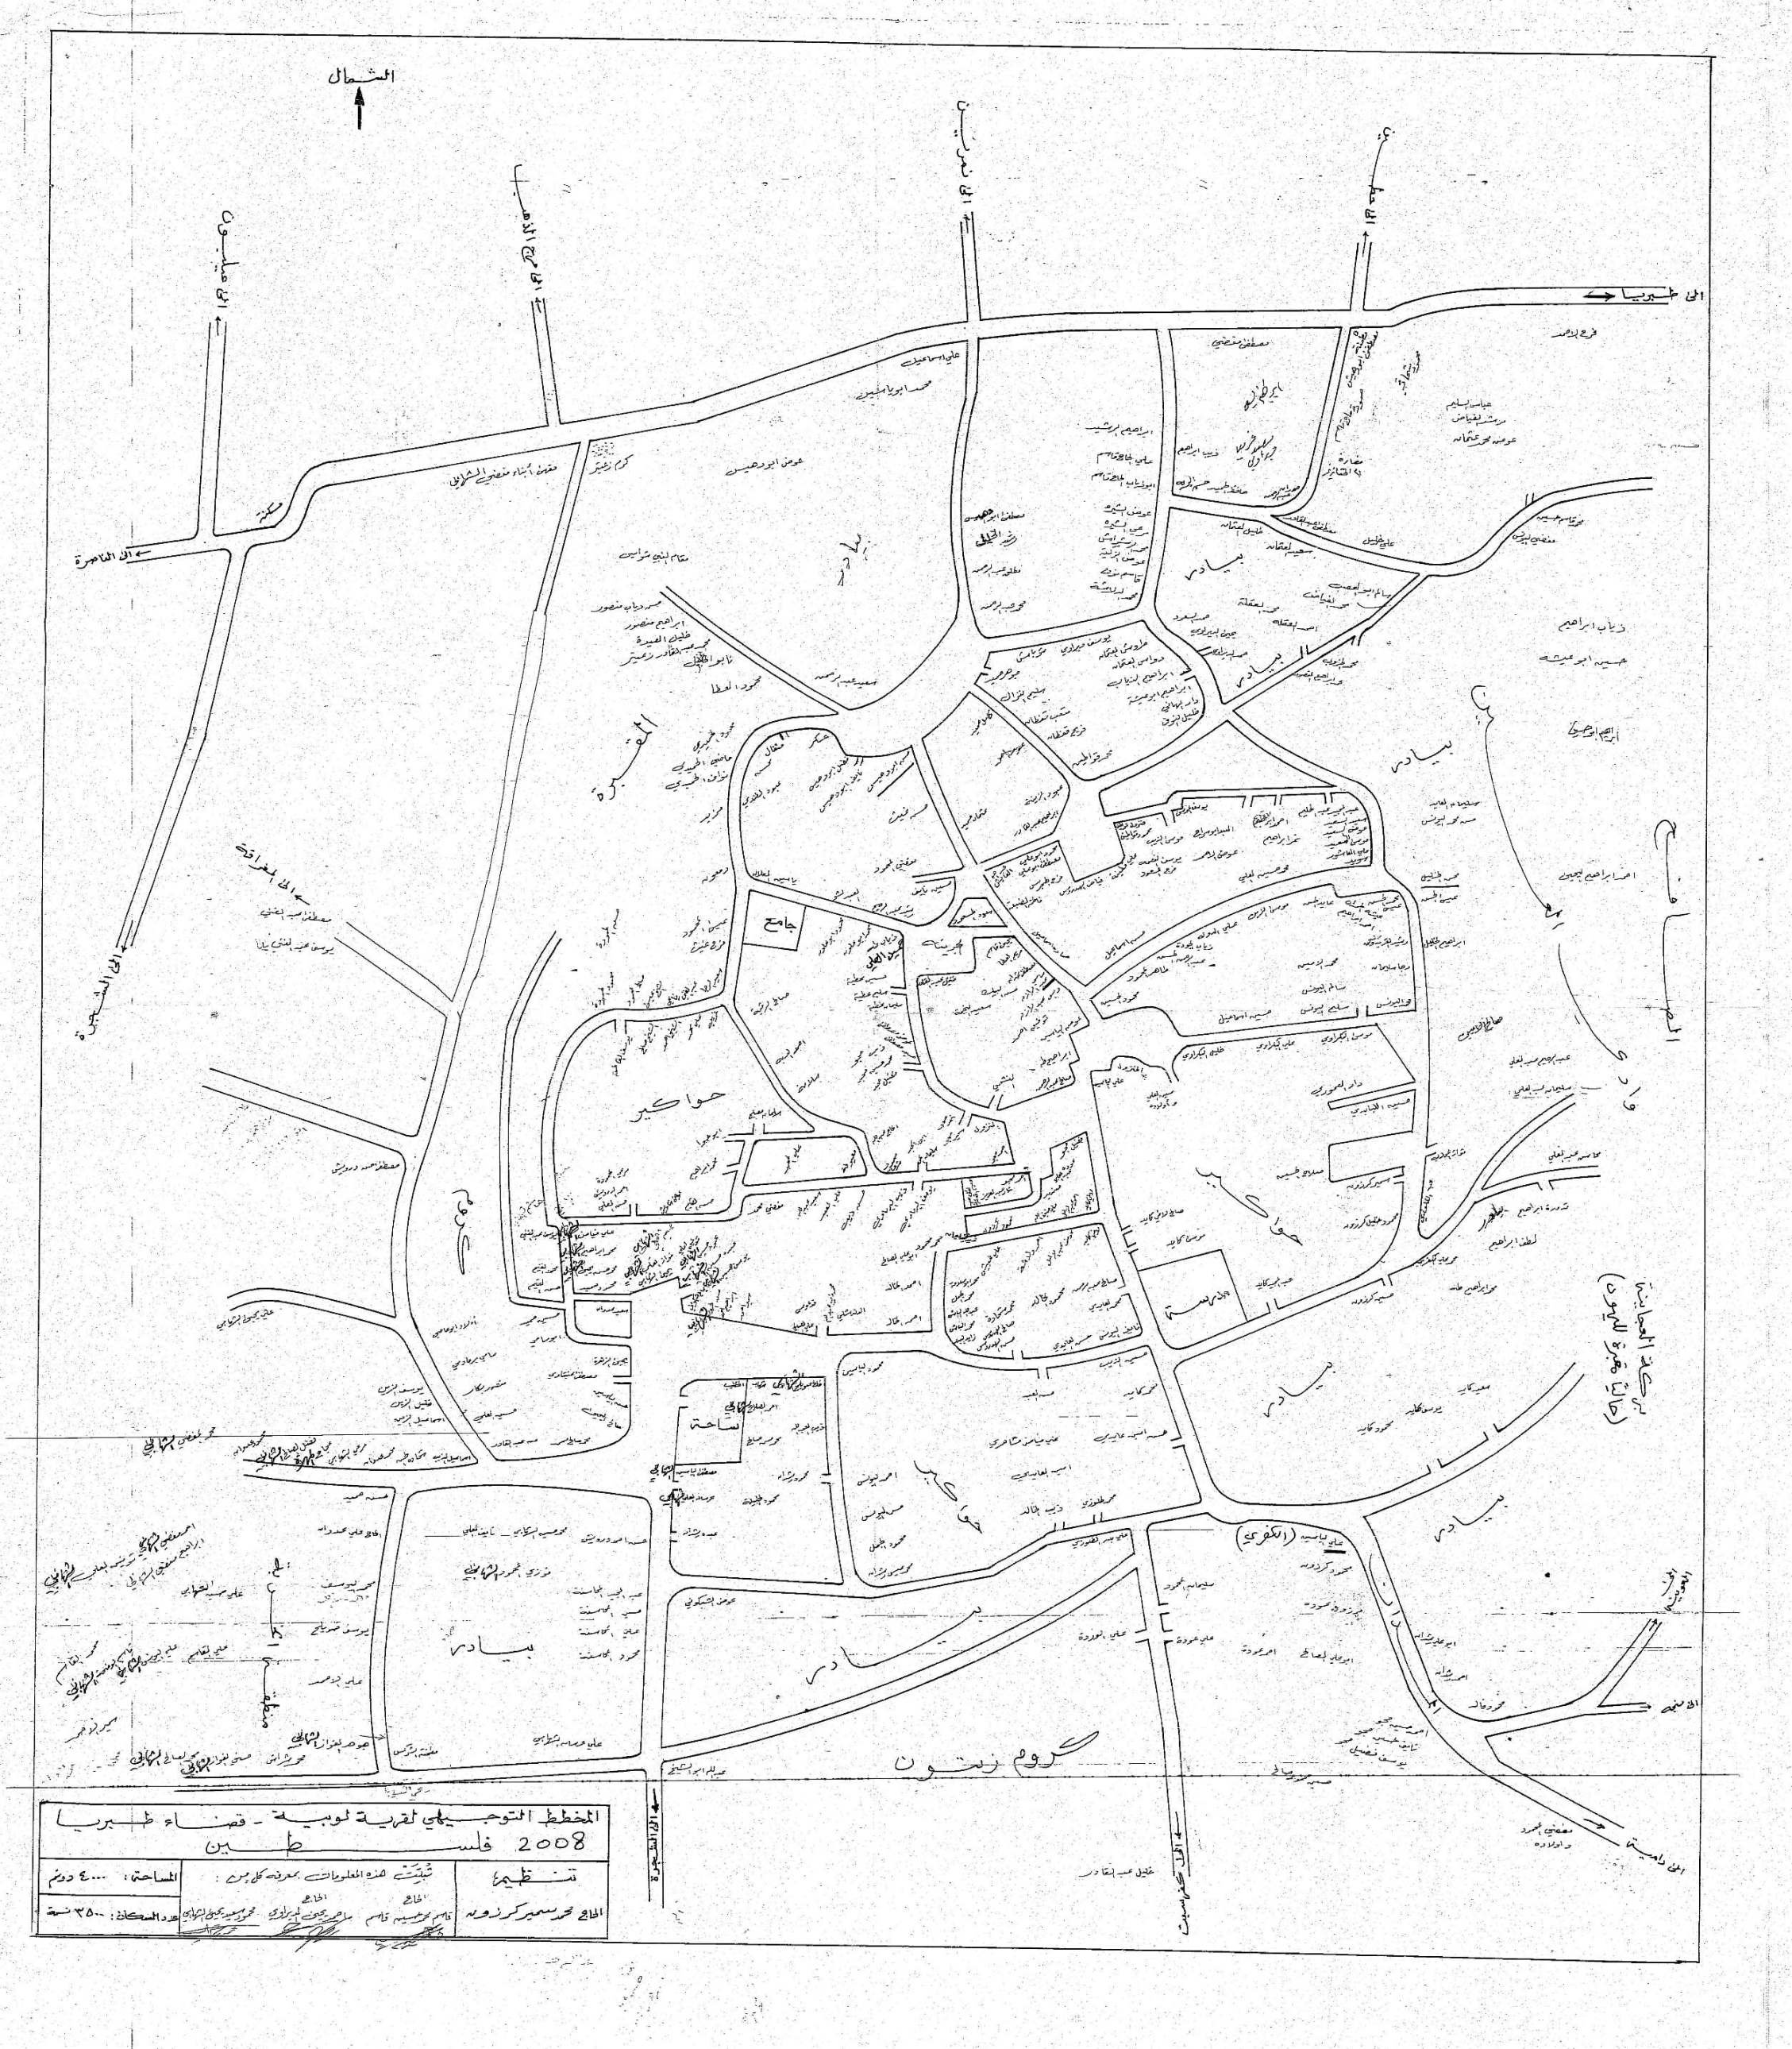 Lubya - لوبيا : Lubya's map before destruction and before ethnic cleansing, click the map to enlarge it.